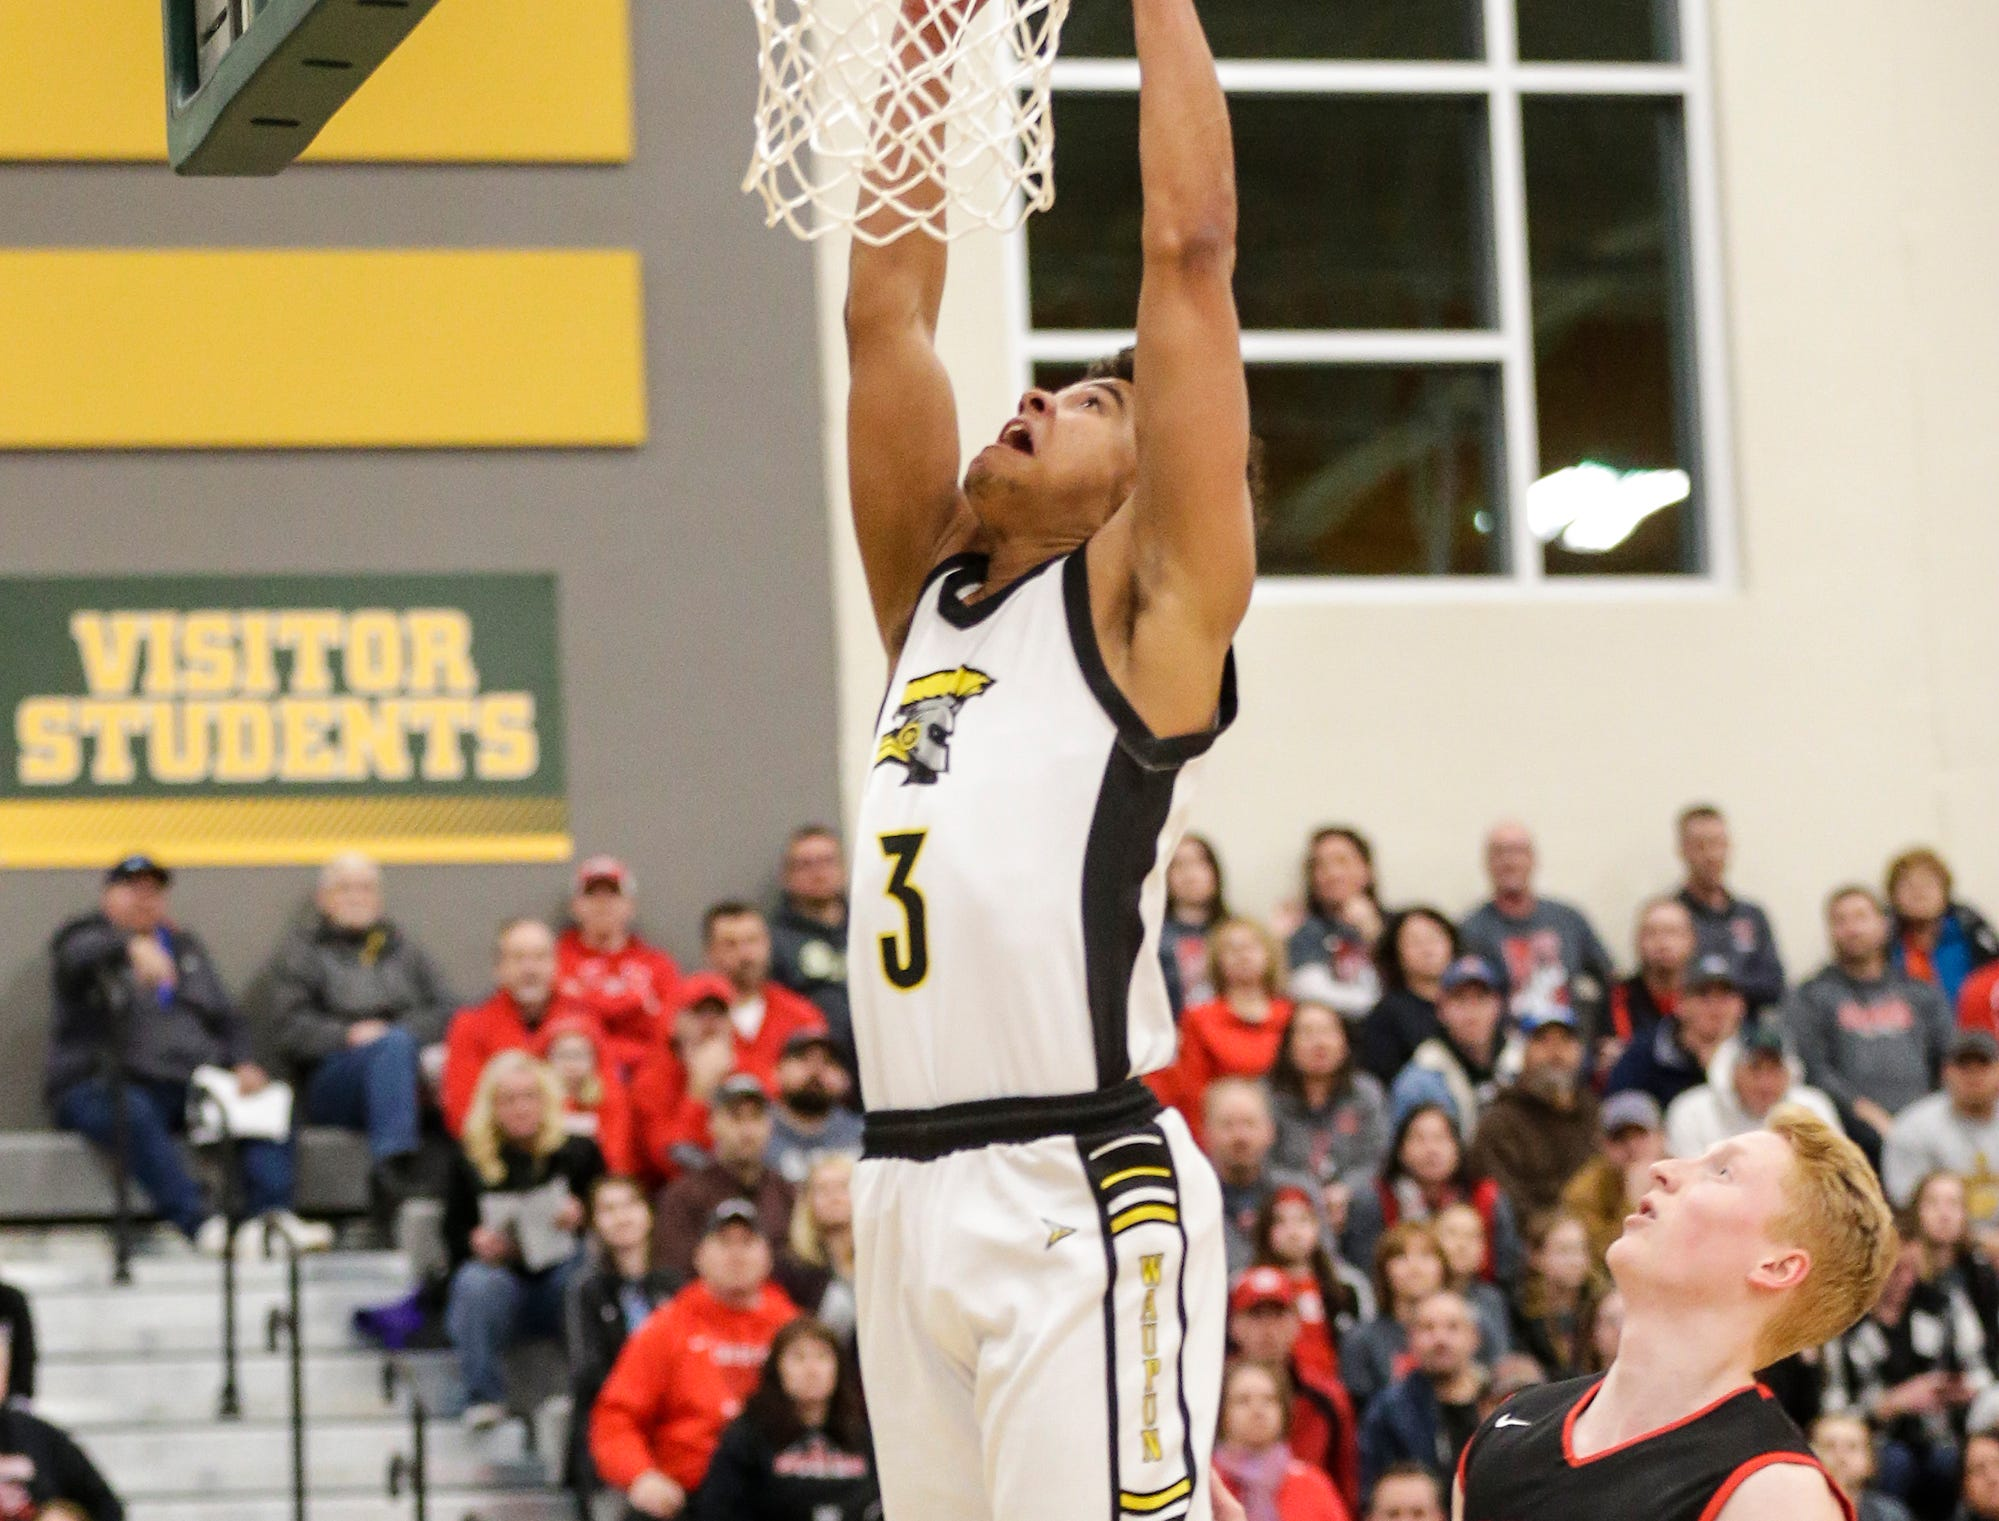 Waupun High School boys basketball's Quintin Winterfeldt (3) goes up for a basket against Columbus High School's Trent Casper (22) during their WIAA division 3 sectional semi-final game Thursday, March 7, 2019 in Beaver Dam, Wis. Waupun won the game 79-36. Doug Raflik/USA TODAY NETWORK-Wisconsin